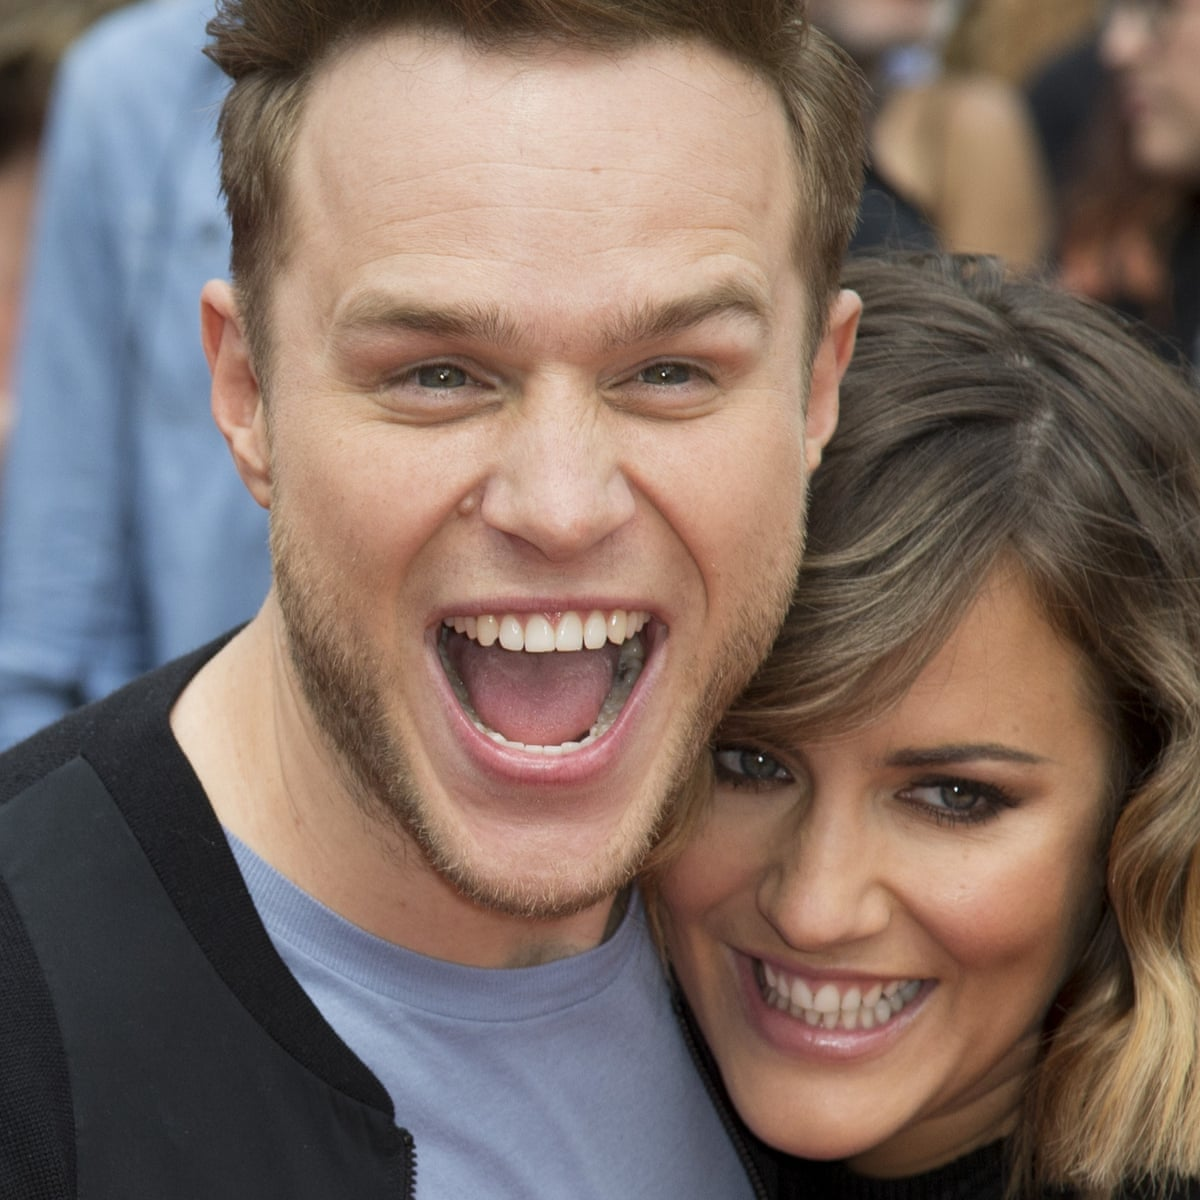 X Factor Olly Murs And Caroline Flack Quit Show Media The Guardian